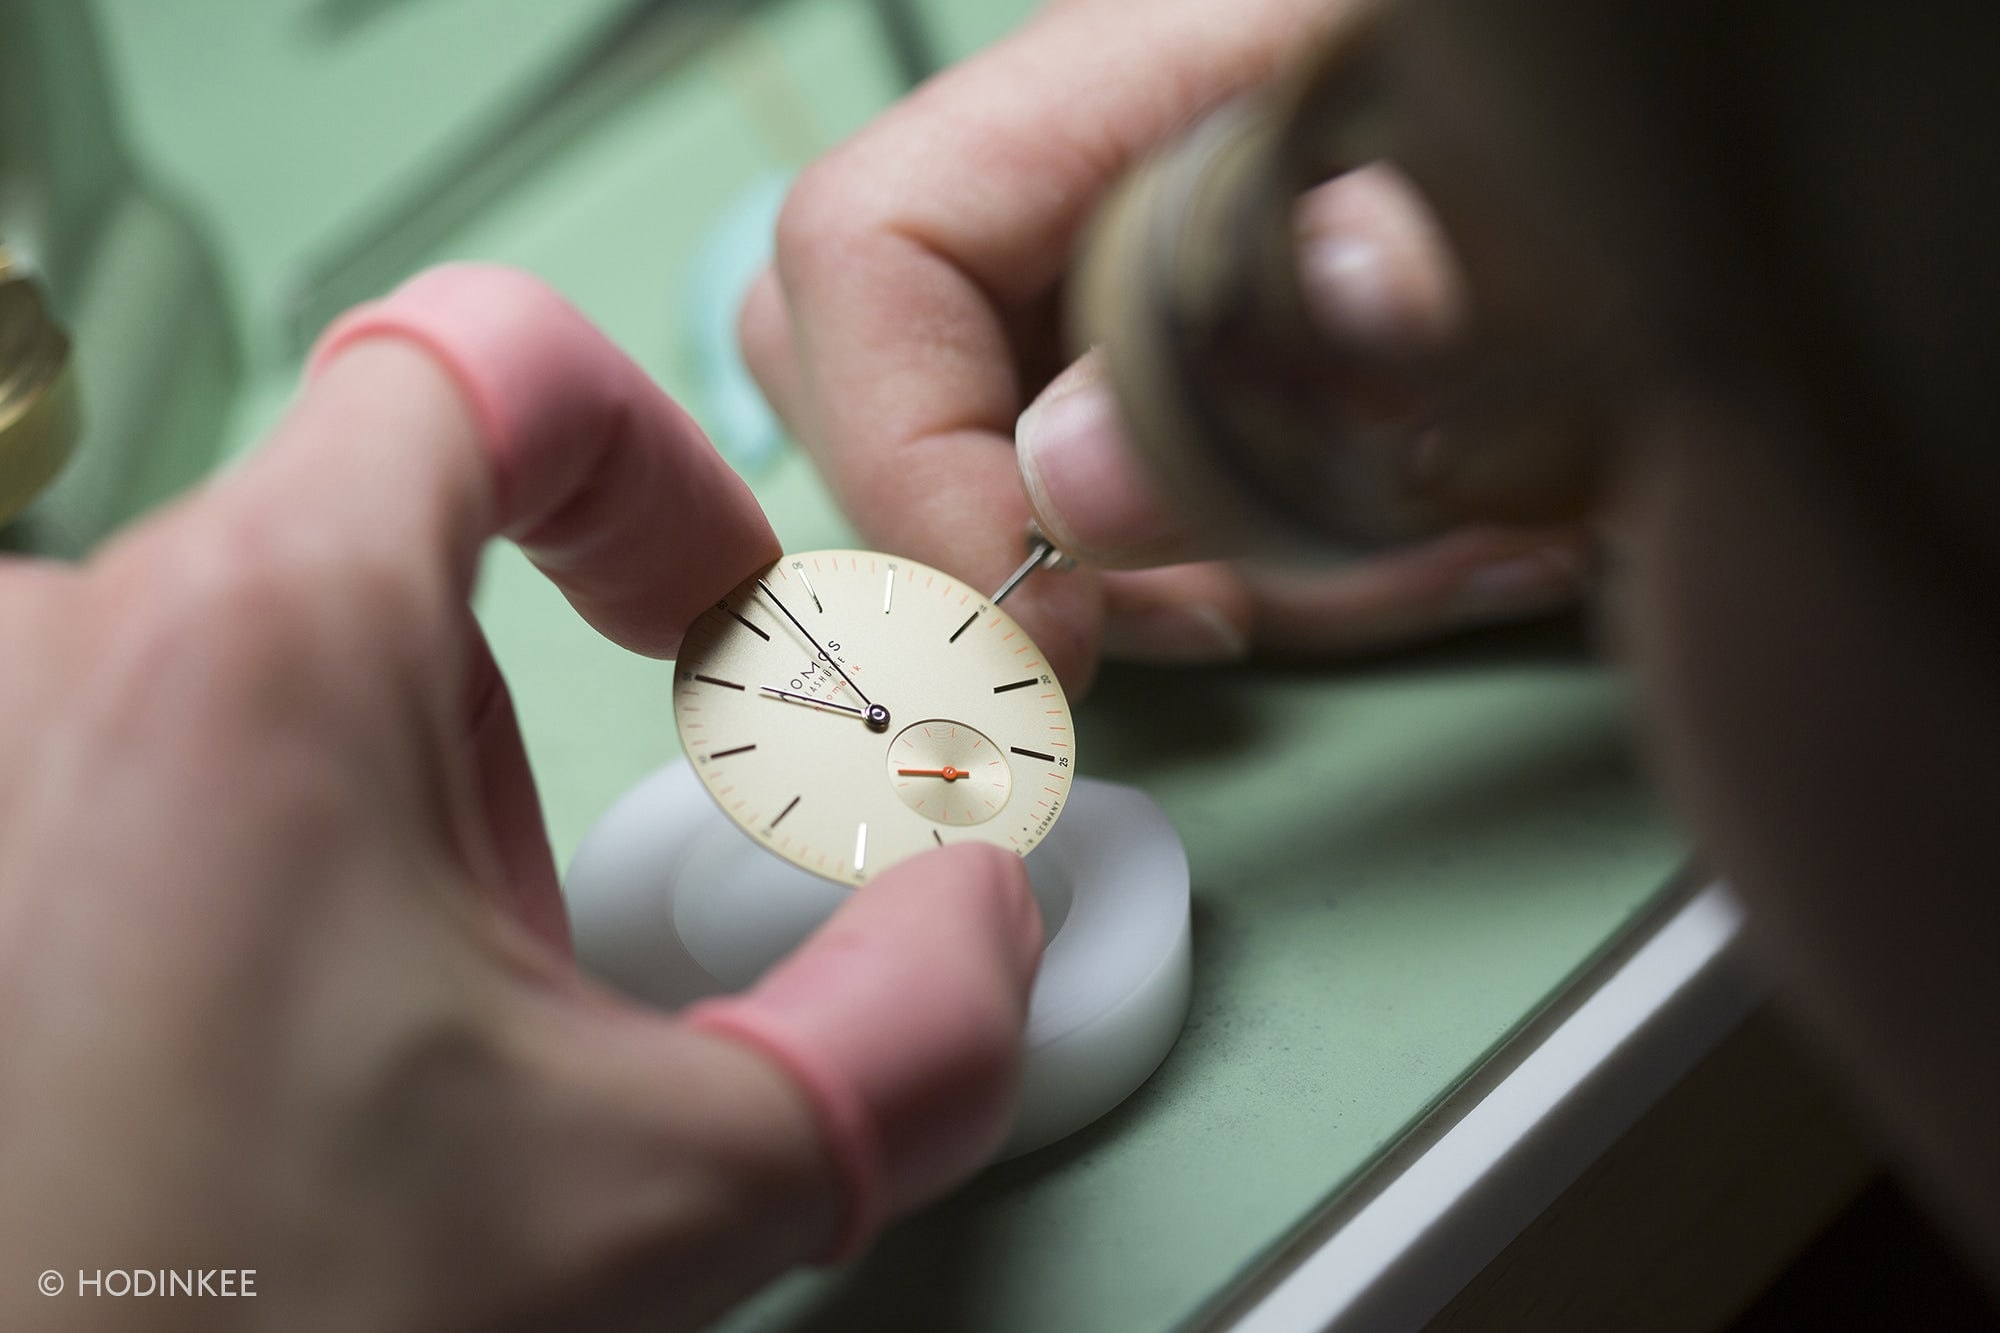 Sunday Rewind: A Look At How NOMOS Glashütte Designs And Develops A Watch 588A8910 copy